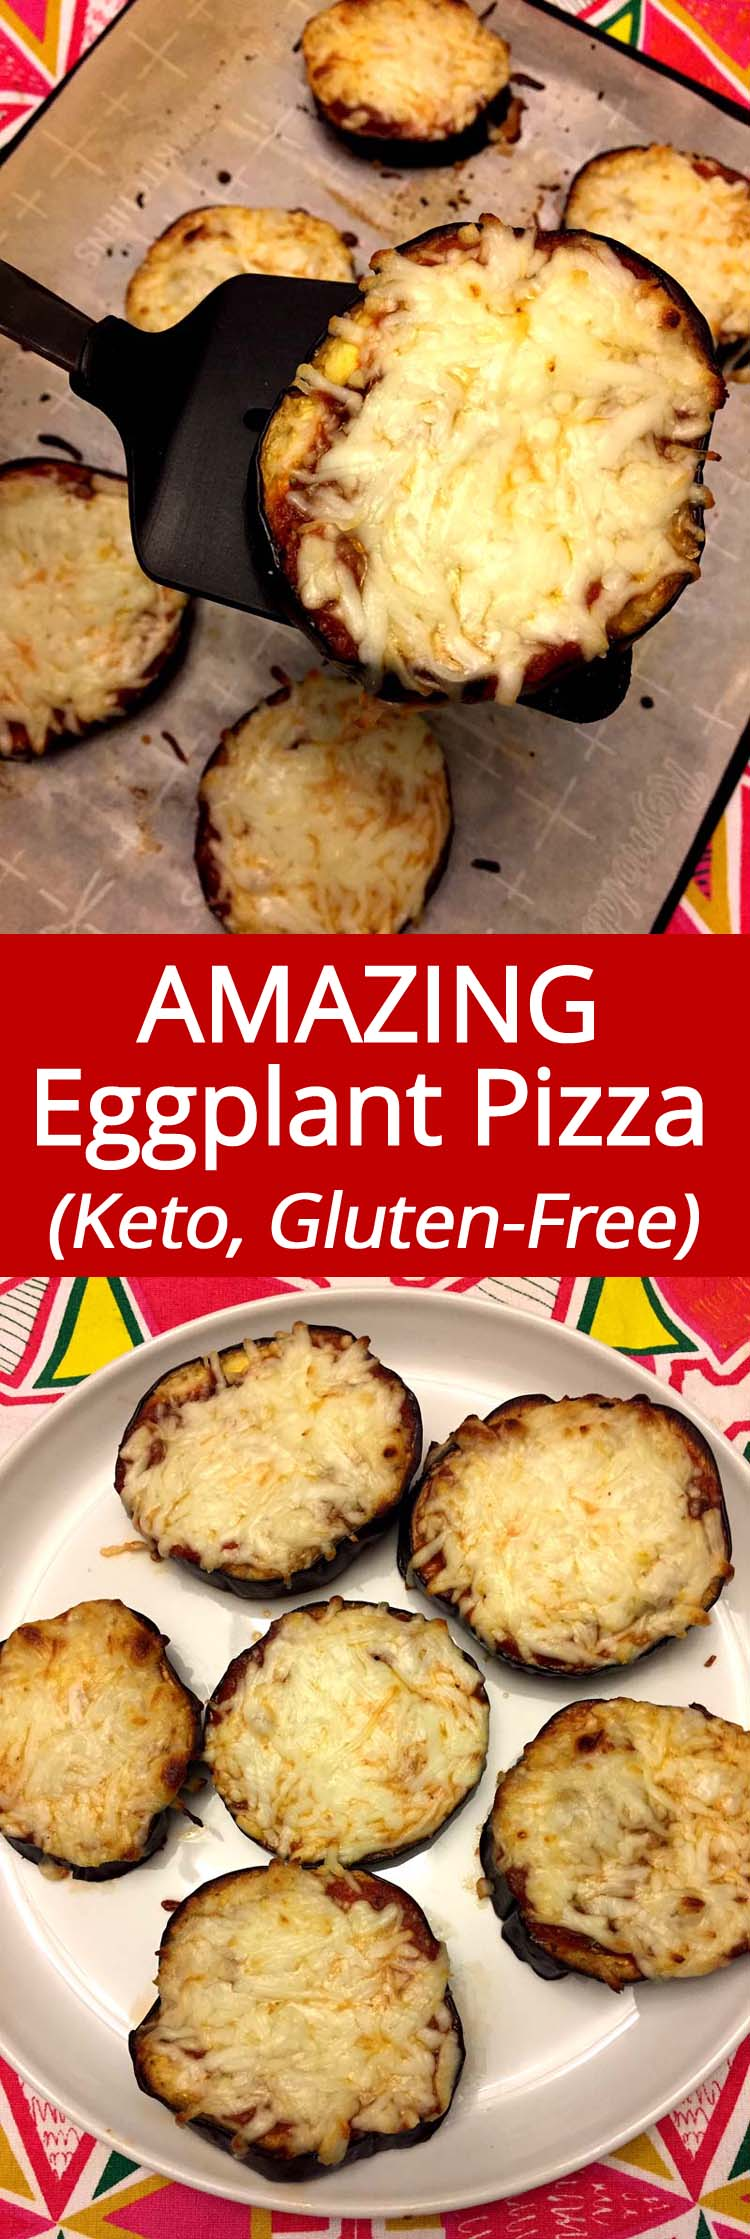 These keto eggplant pizzas are amazing! Finally a pizza recipe that's good for you! These eggplant pizza bites are low-carb and gluten-free and taste amazing!